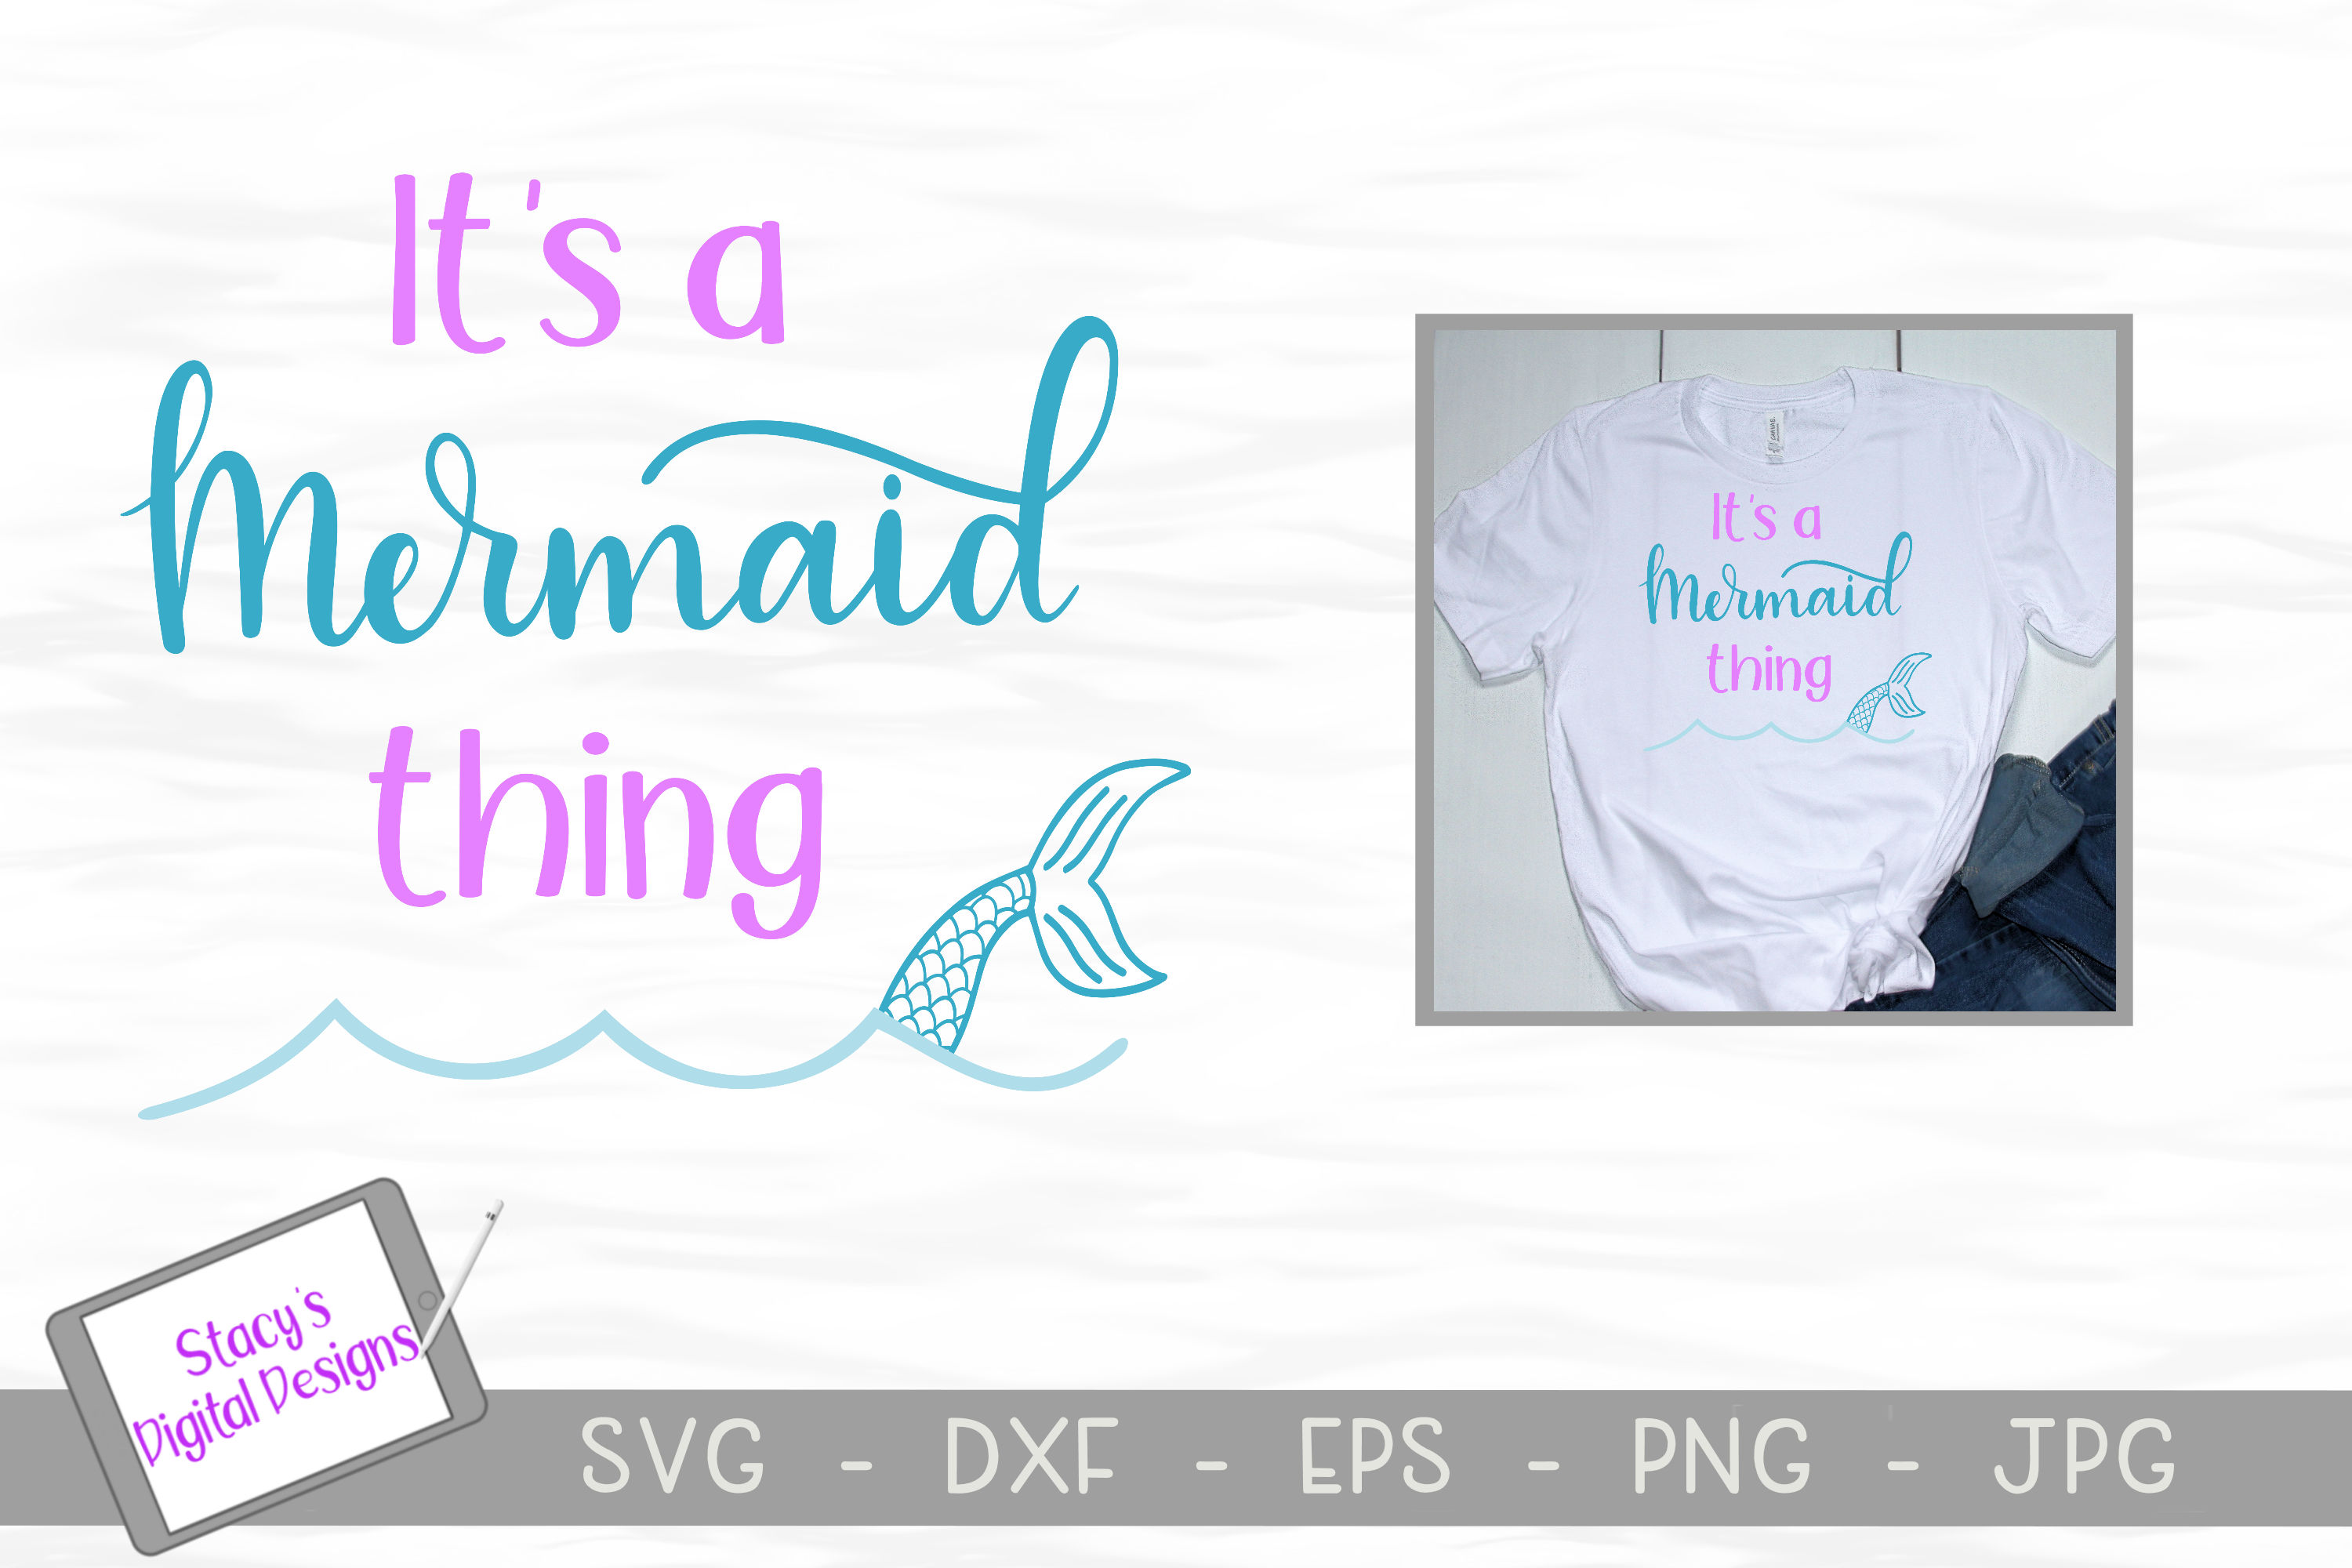 Mermaid SVG - It's a mermaid thing example image 1